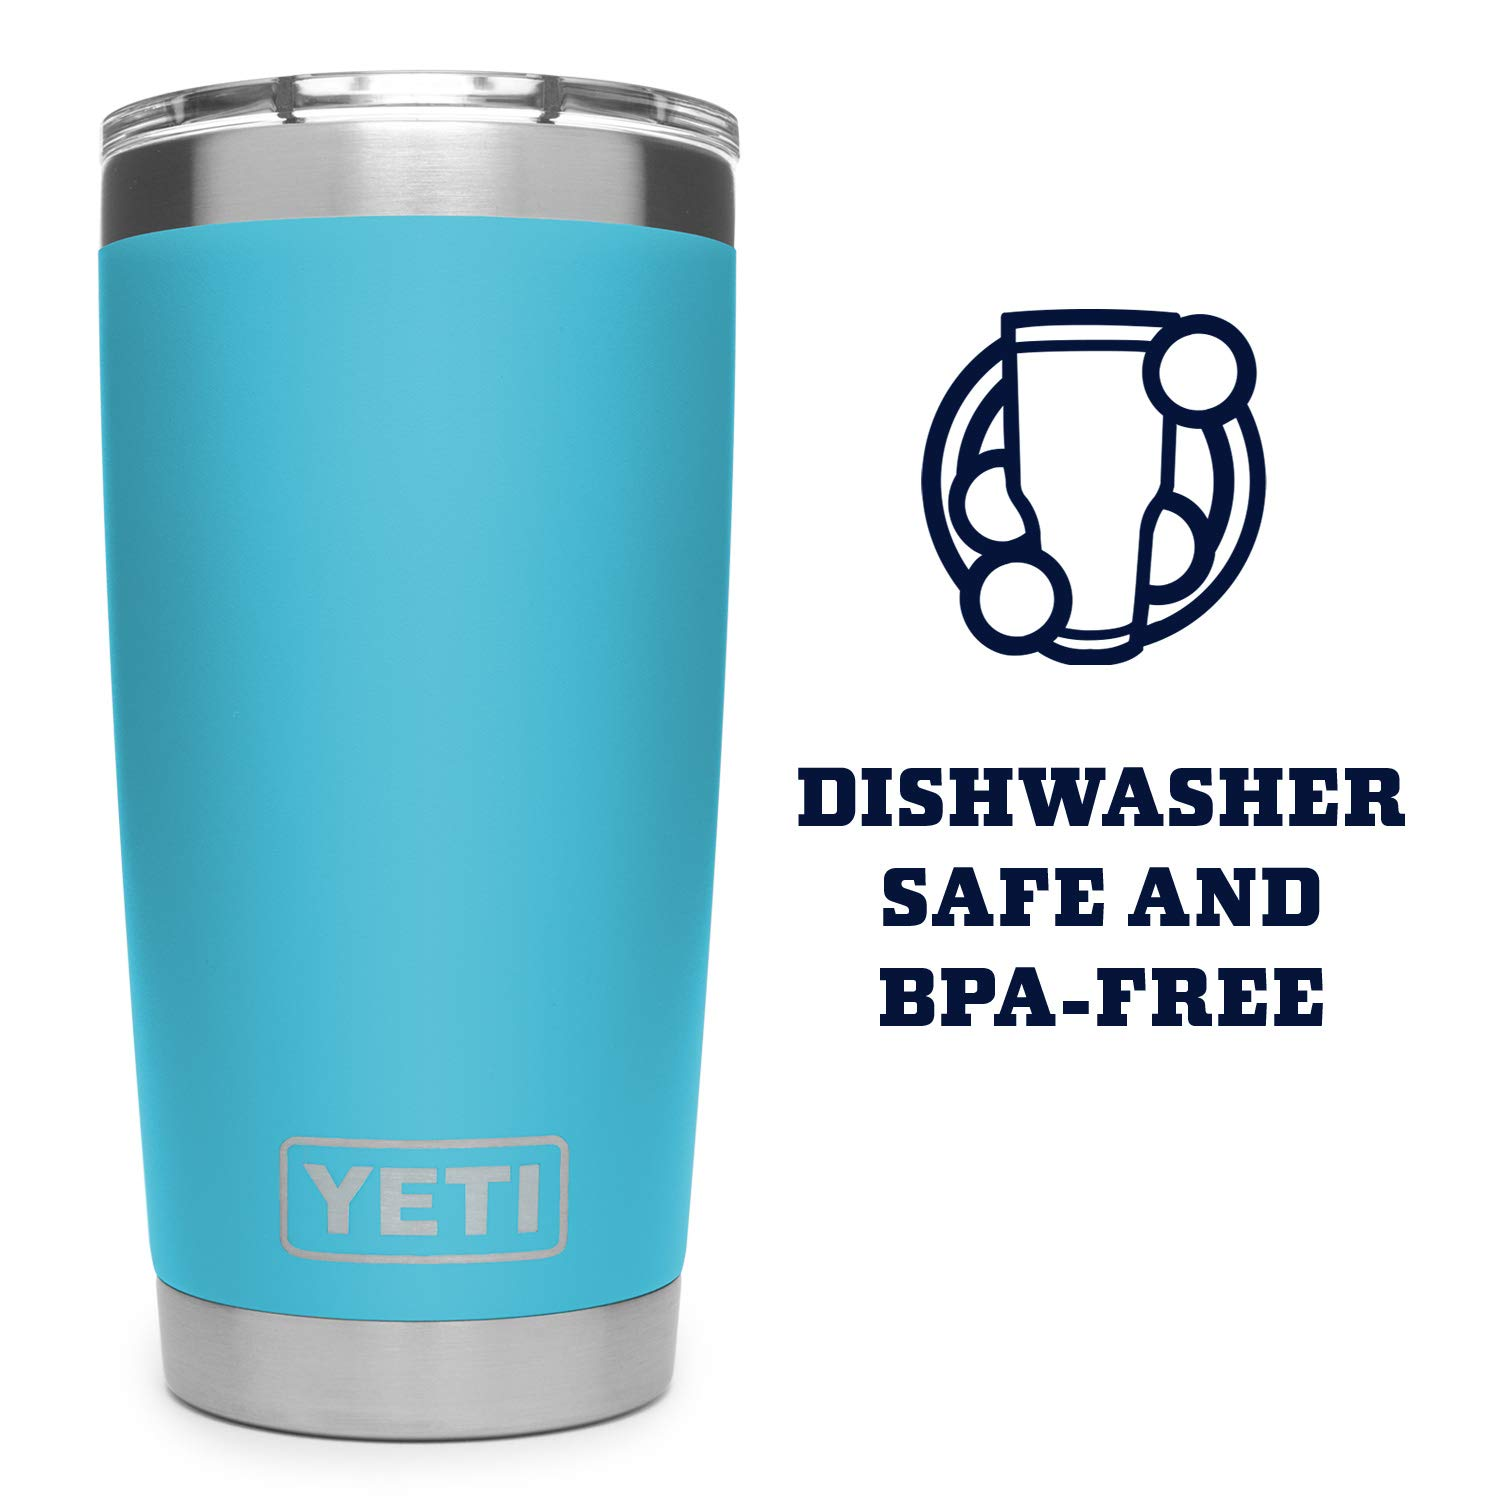 YETI Rambler 20 oz Stainless Steel Vacuum Insulated Tumbler w/MagSlider Lid, Reef Blue by YETI (Image #4)